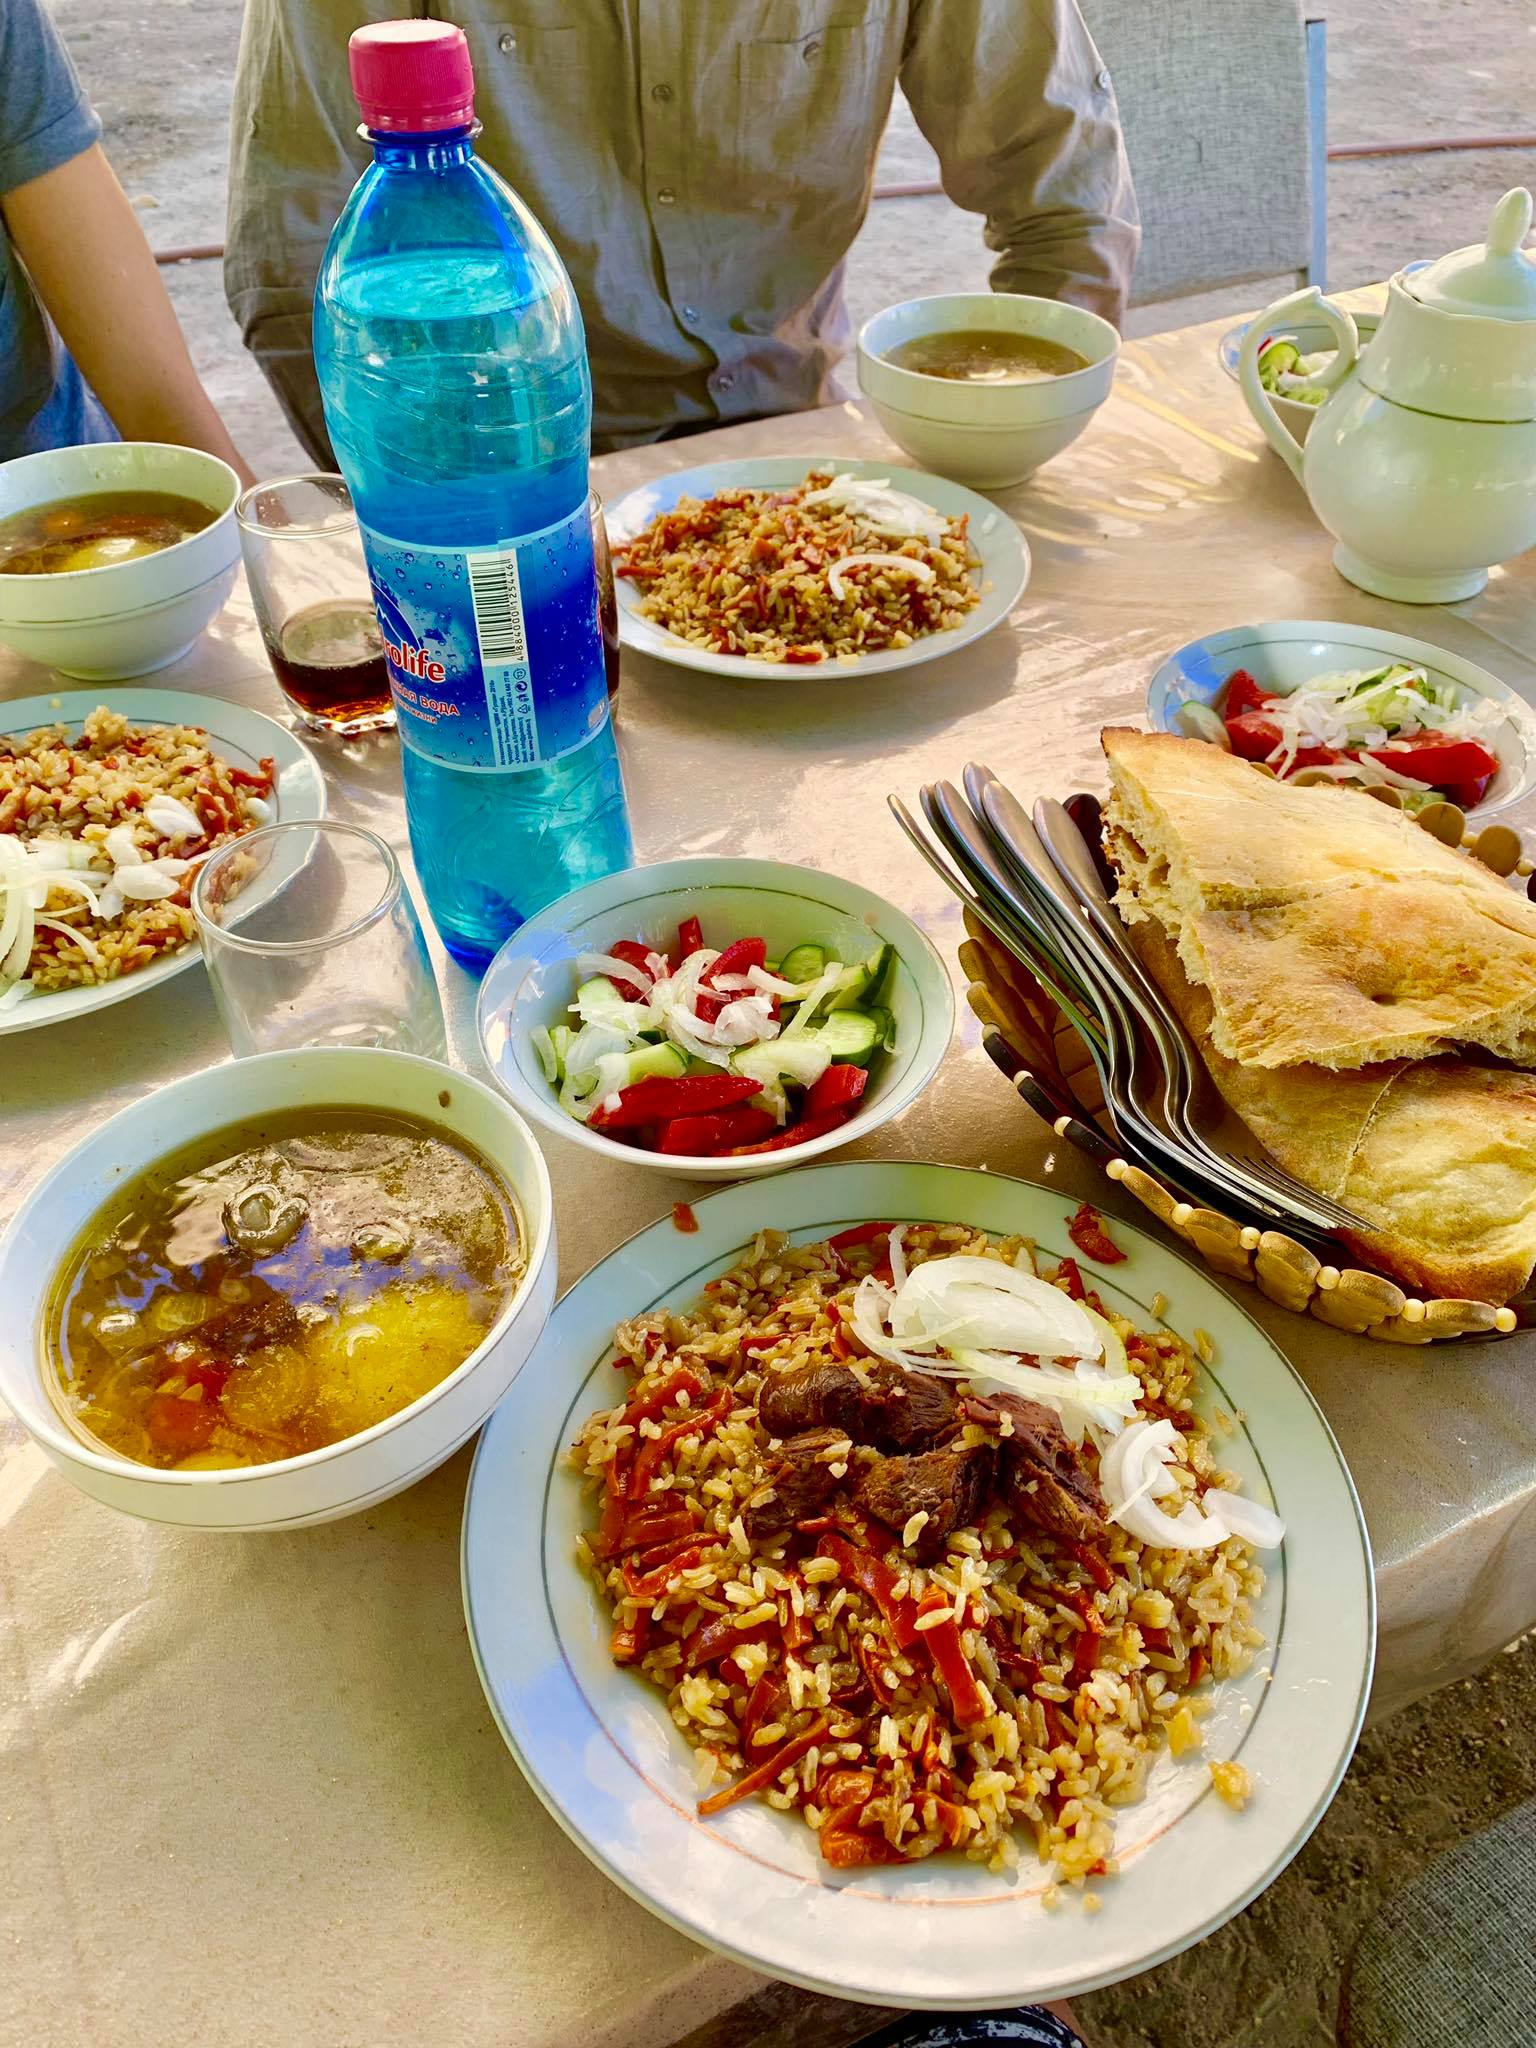 13 Things You Should Not Miss When You Travel the Pamir Highway in Tajikistan9